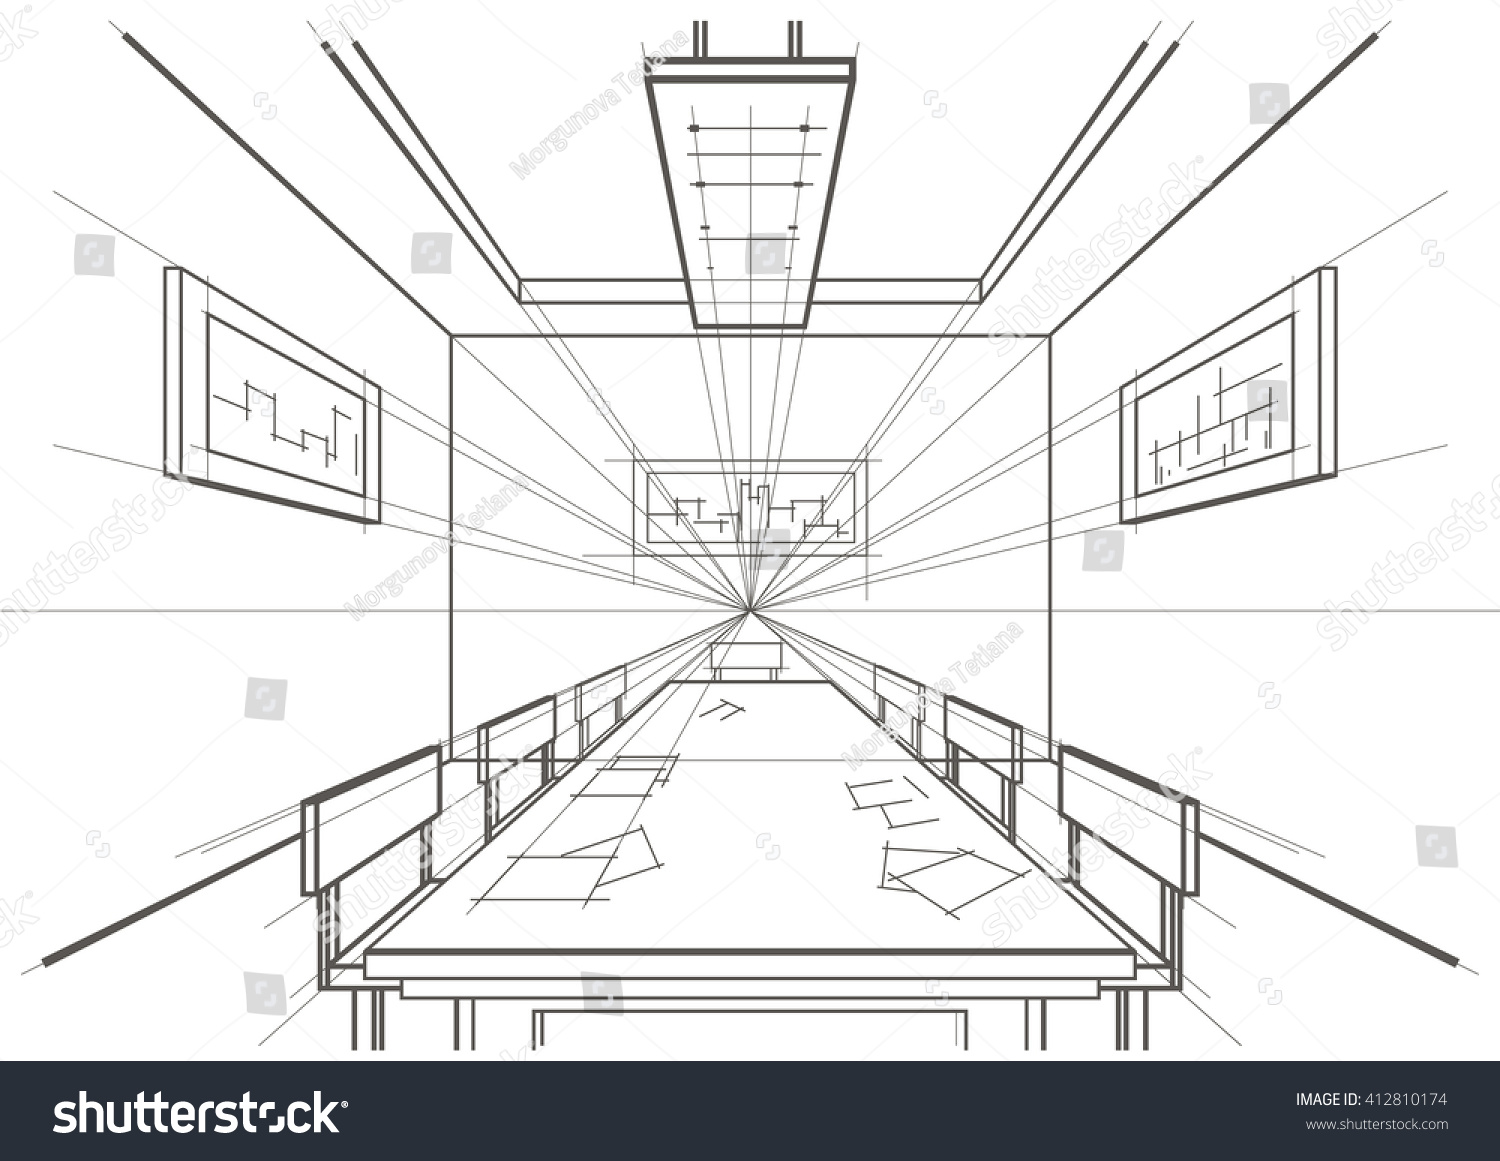 Linear architectural sketch interior conference room stock for Linear organization in architecture